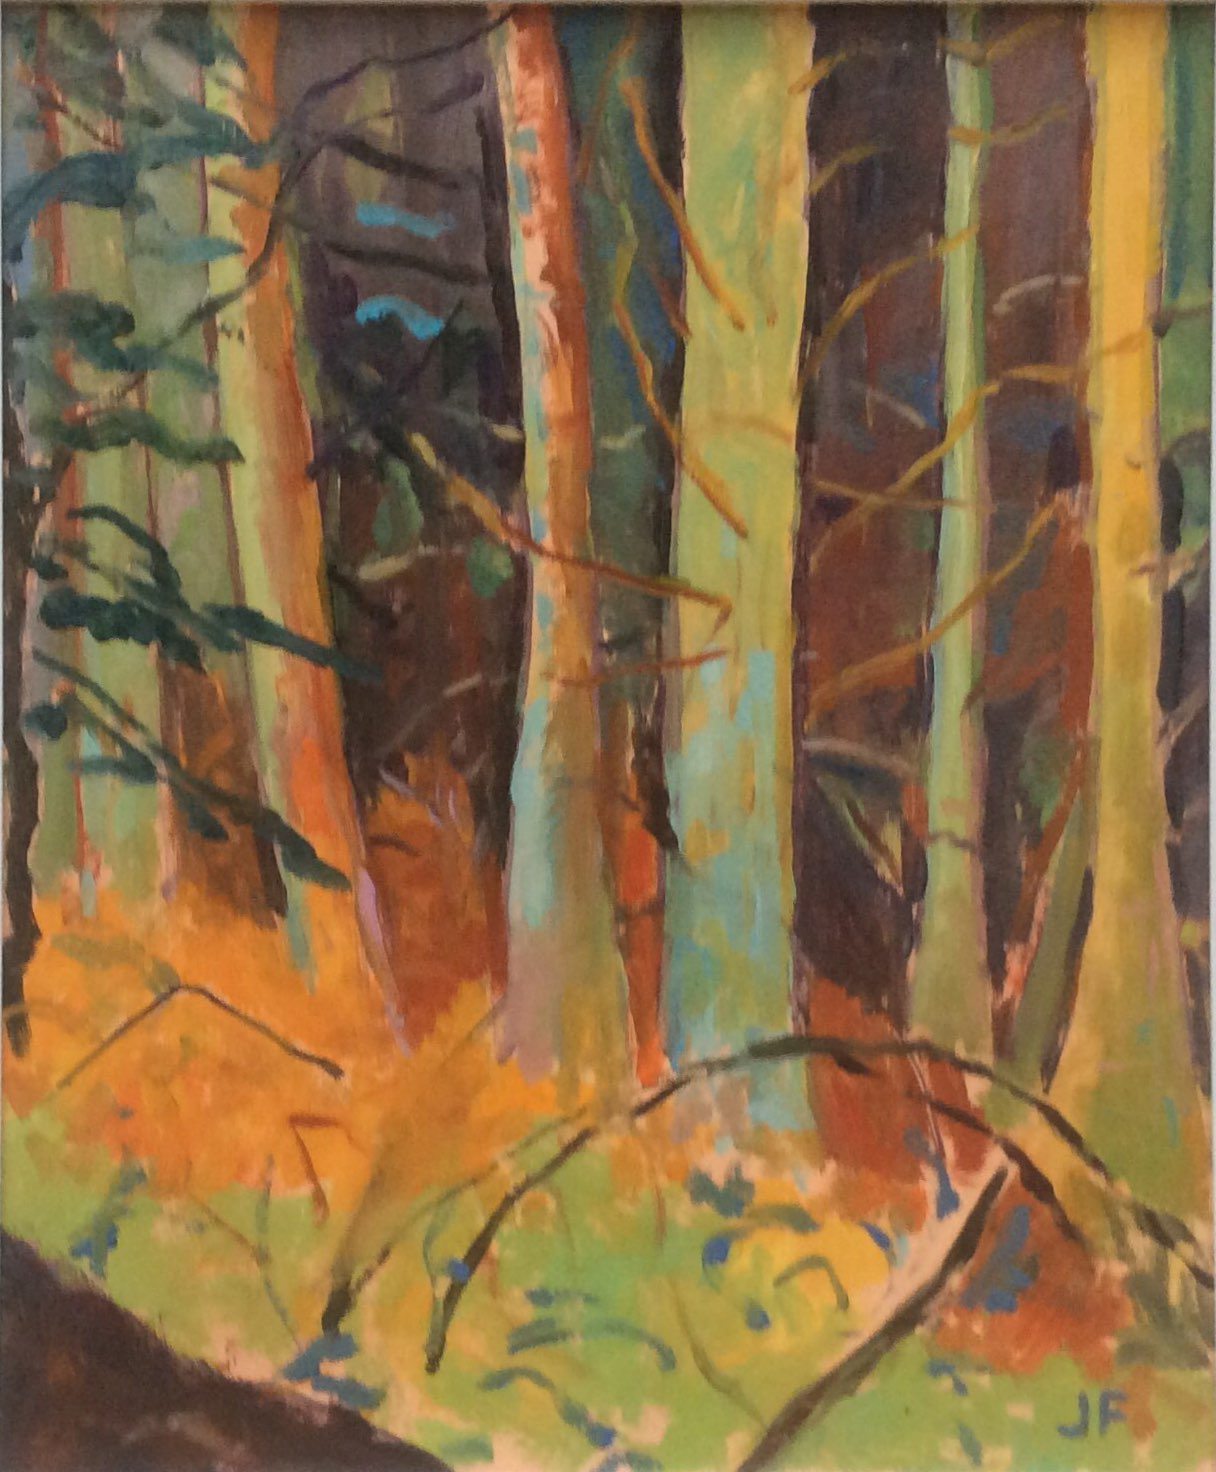 Wardour woods 1 oil 27.5x33